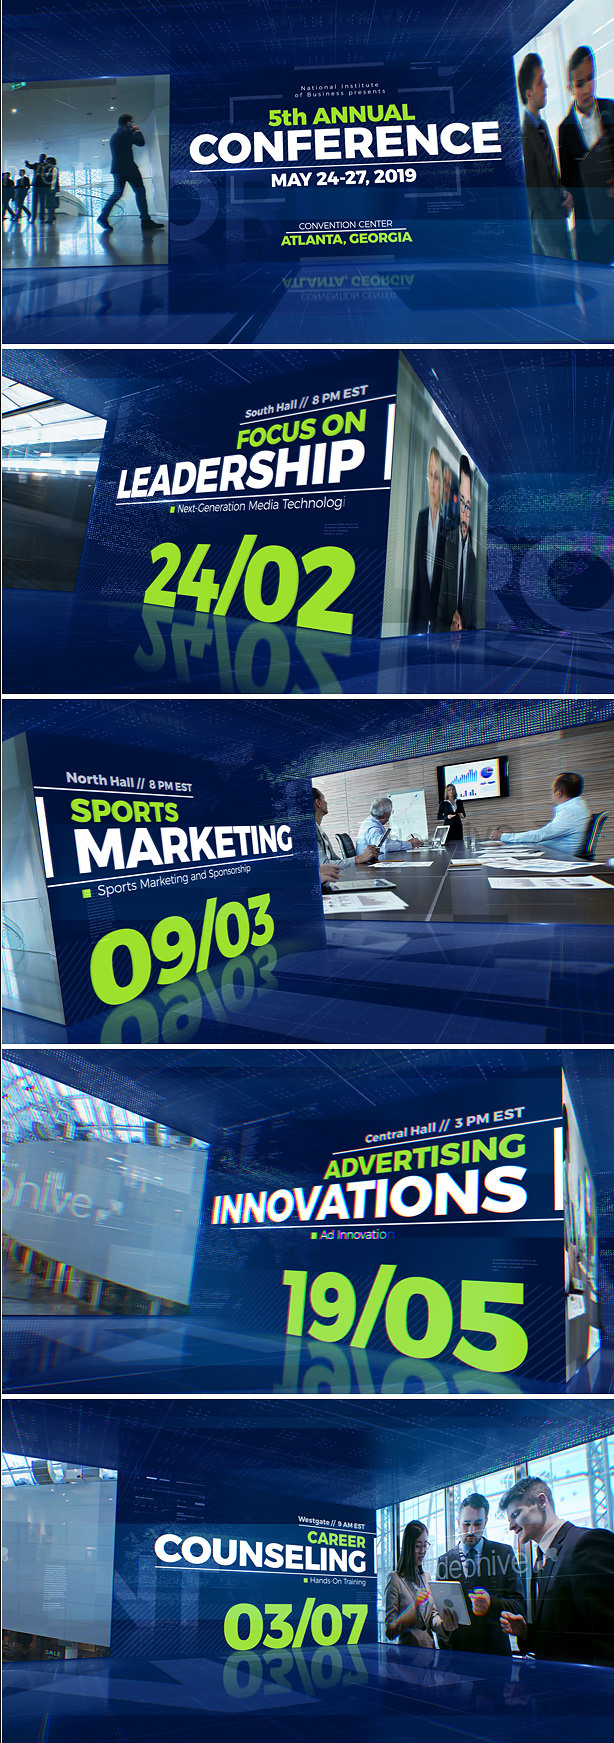 Event Promo After Effects Template for conference, convention, exhibition, meeting, business video